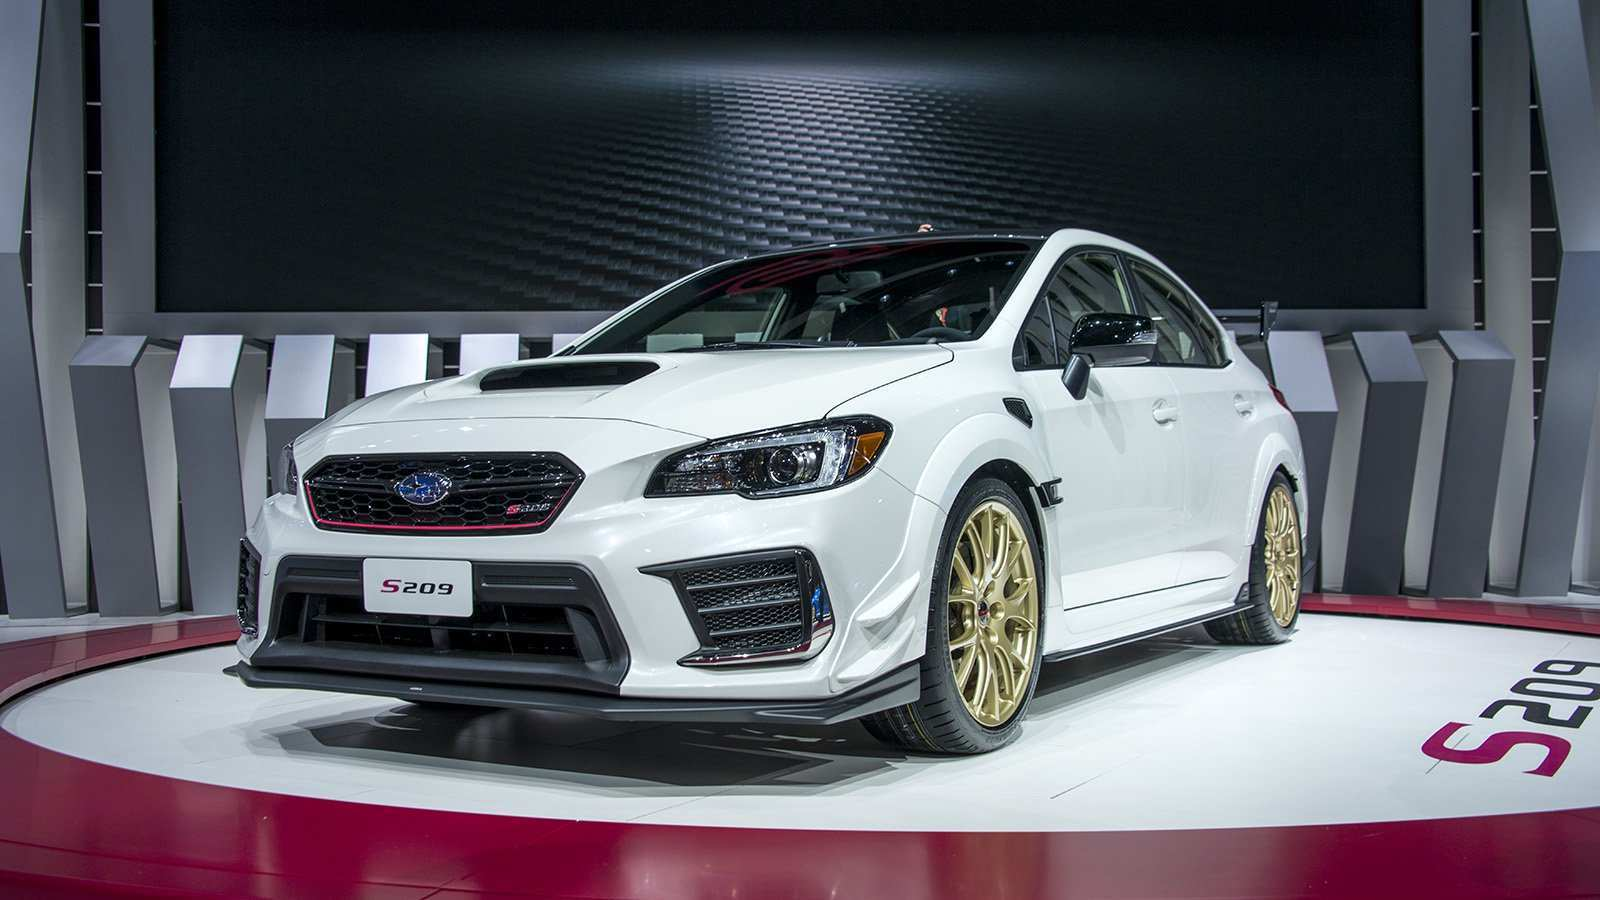 78 The Best Subaru News Sti 2020 Redesign And Review